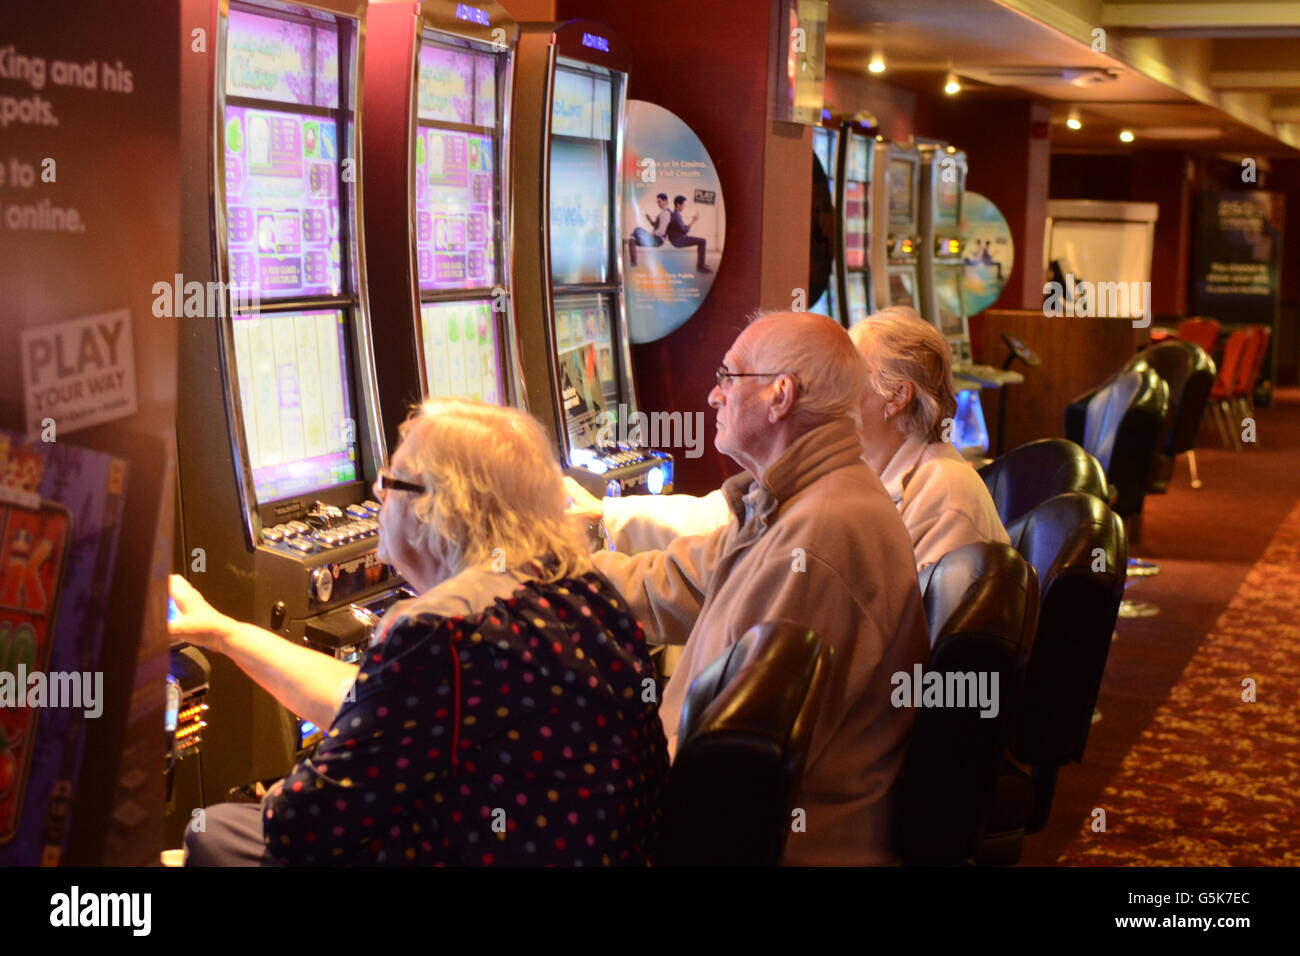 People play gambling machines in a high street casino. - Stock Image